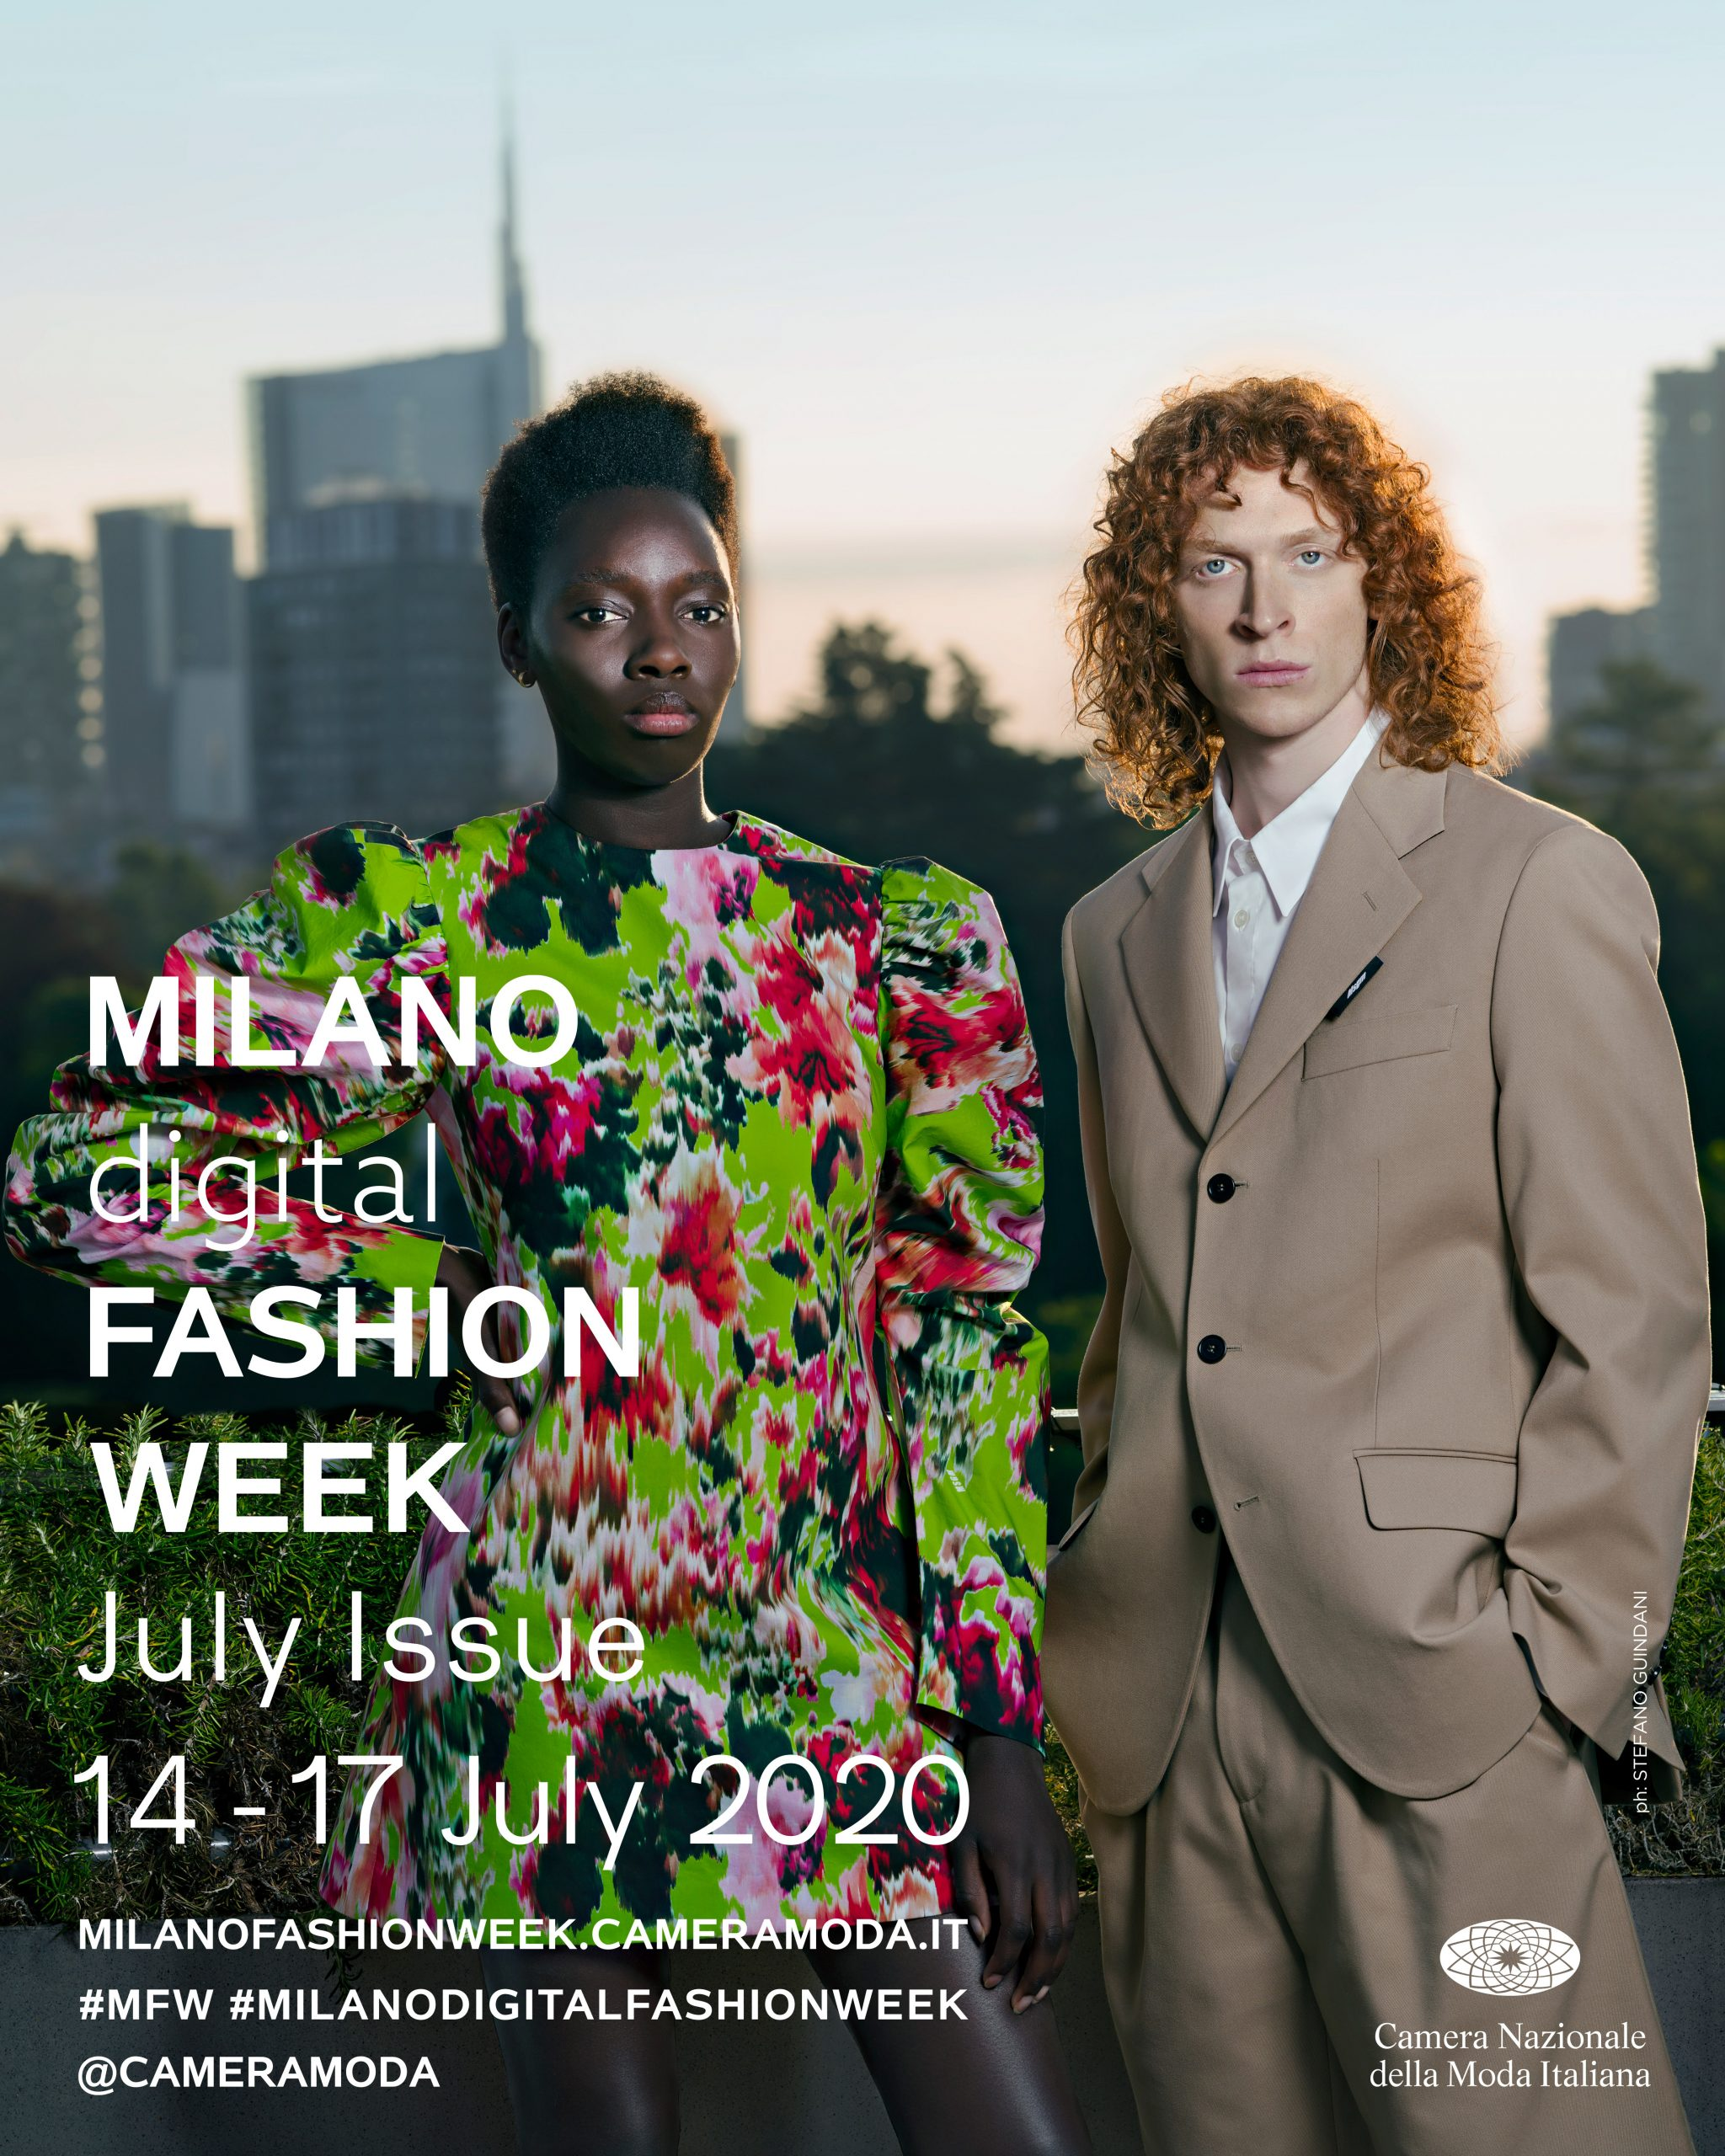 Milan Digital Fashion Week, July 14-17, 2020